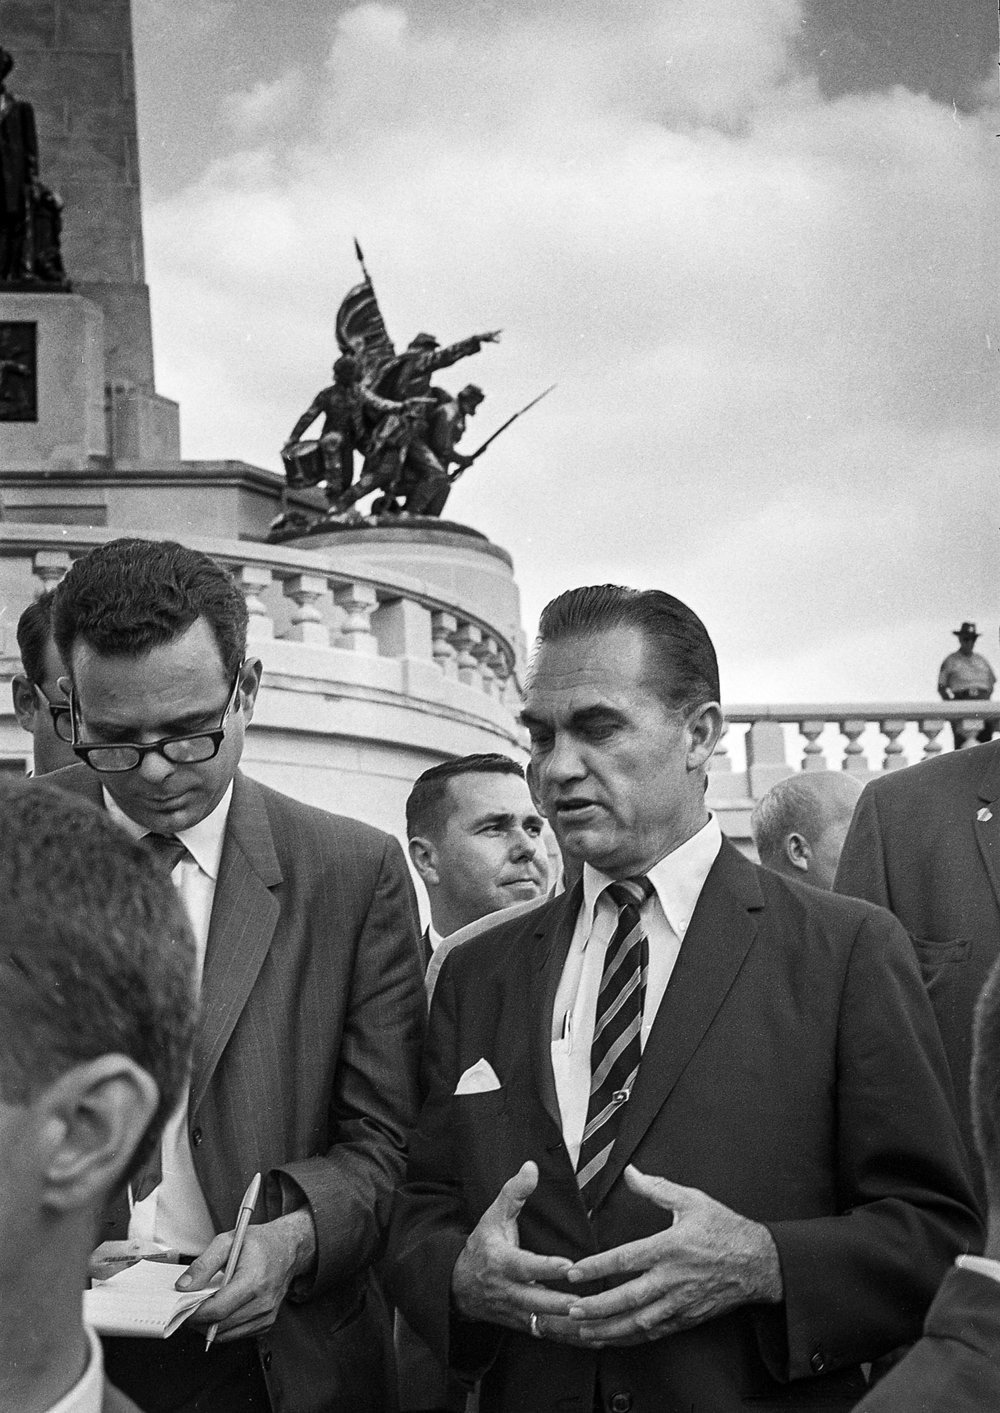 Former Alabama Gov. George Wallace talks to a reporter after placing a wreath outside Lincoln's tomb in Oak Ridge Cemetery Sept. 12, 1968. File/The State Journal-Register